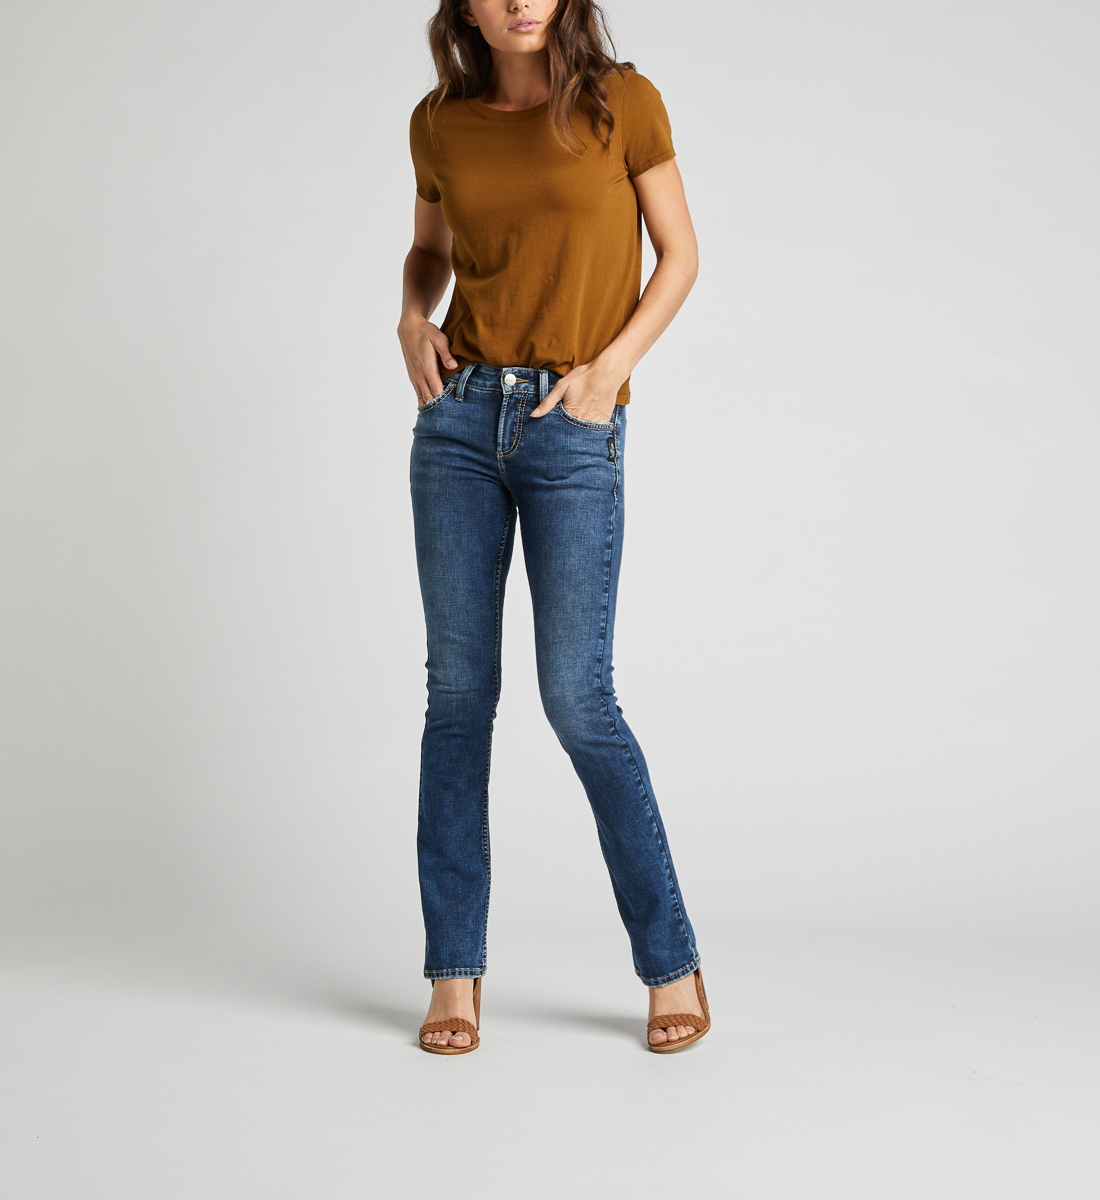 Silver Jeans Avery High Rise Slim Bootcut Jeans